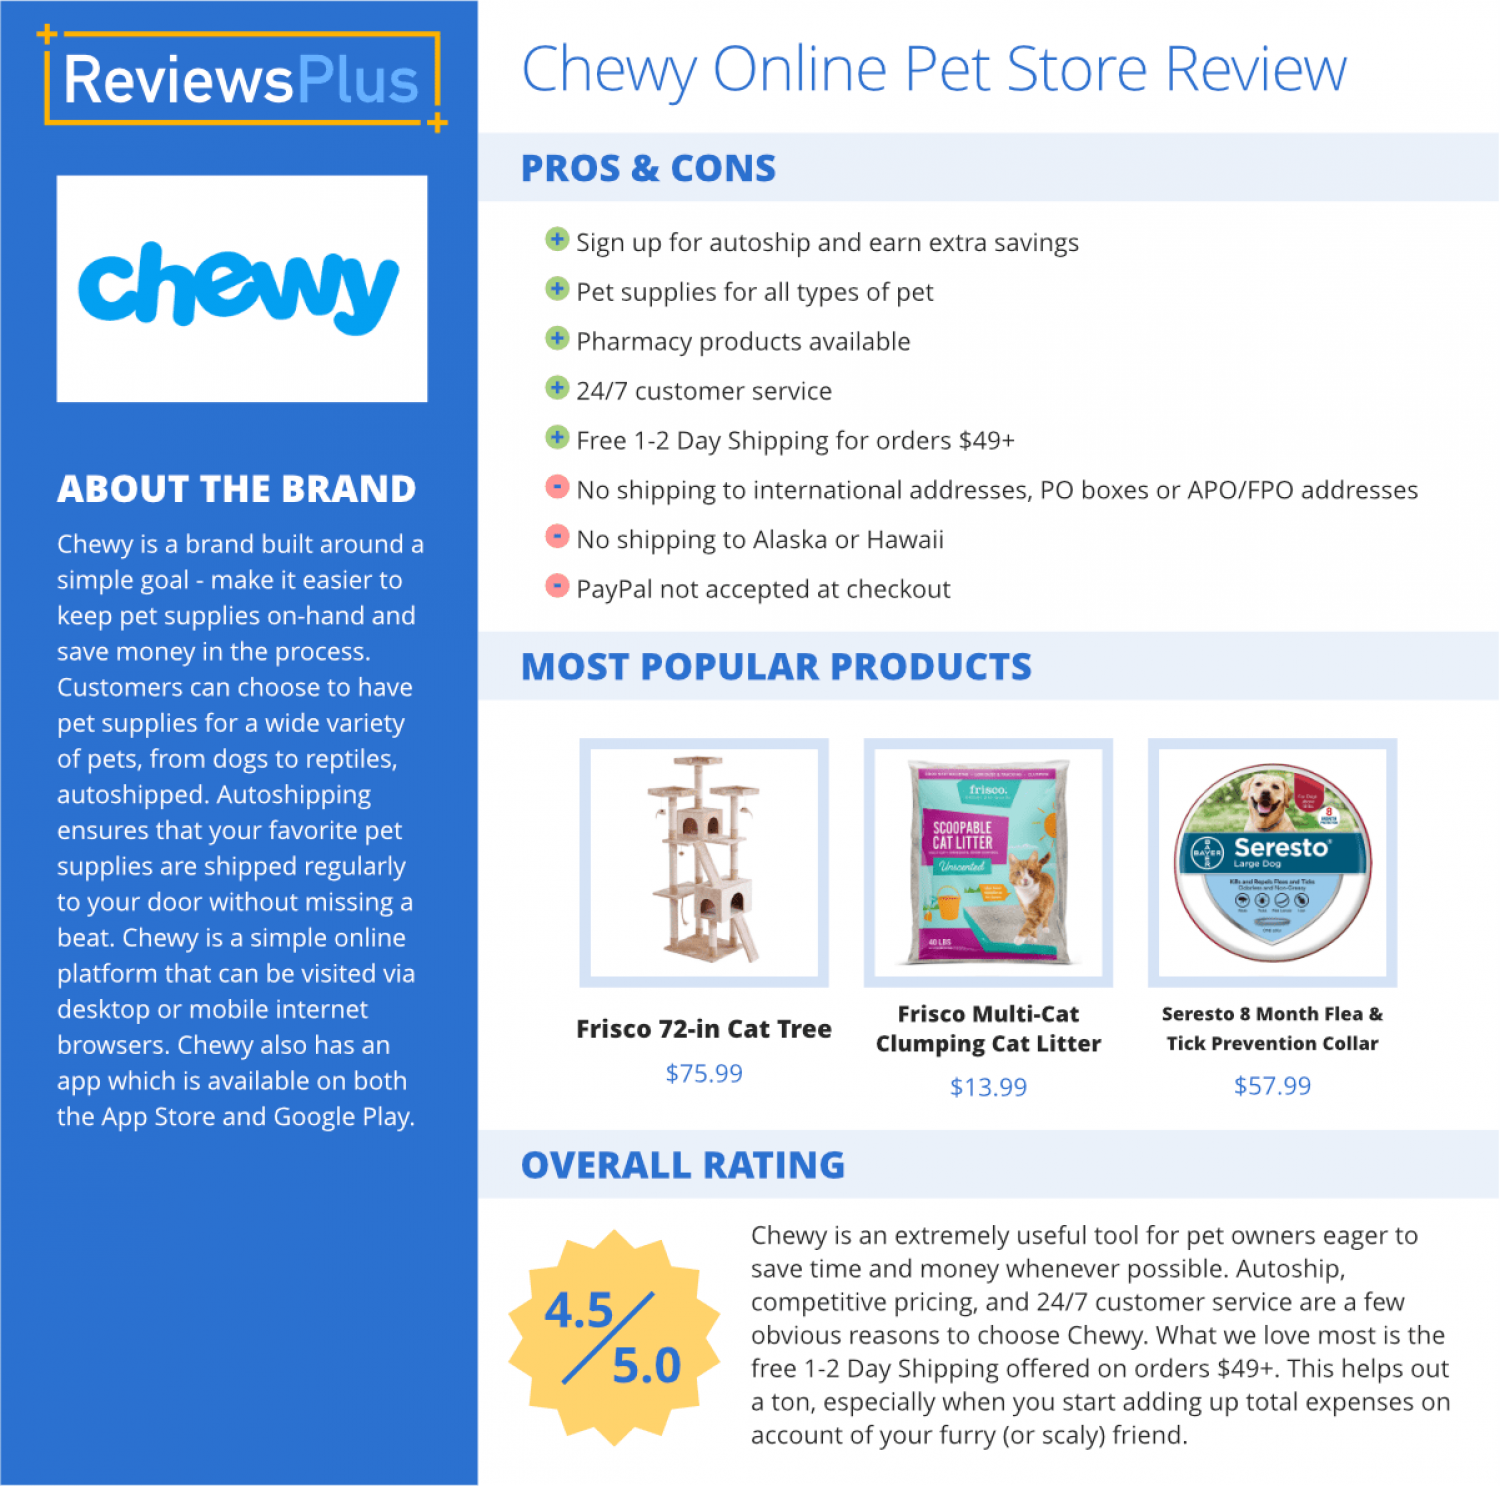 Chewy Online Pet Store Review - ReviewsPlus Infographic